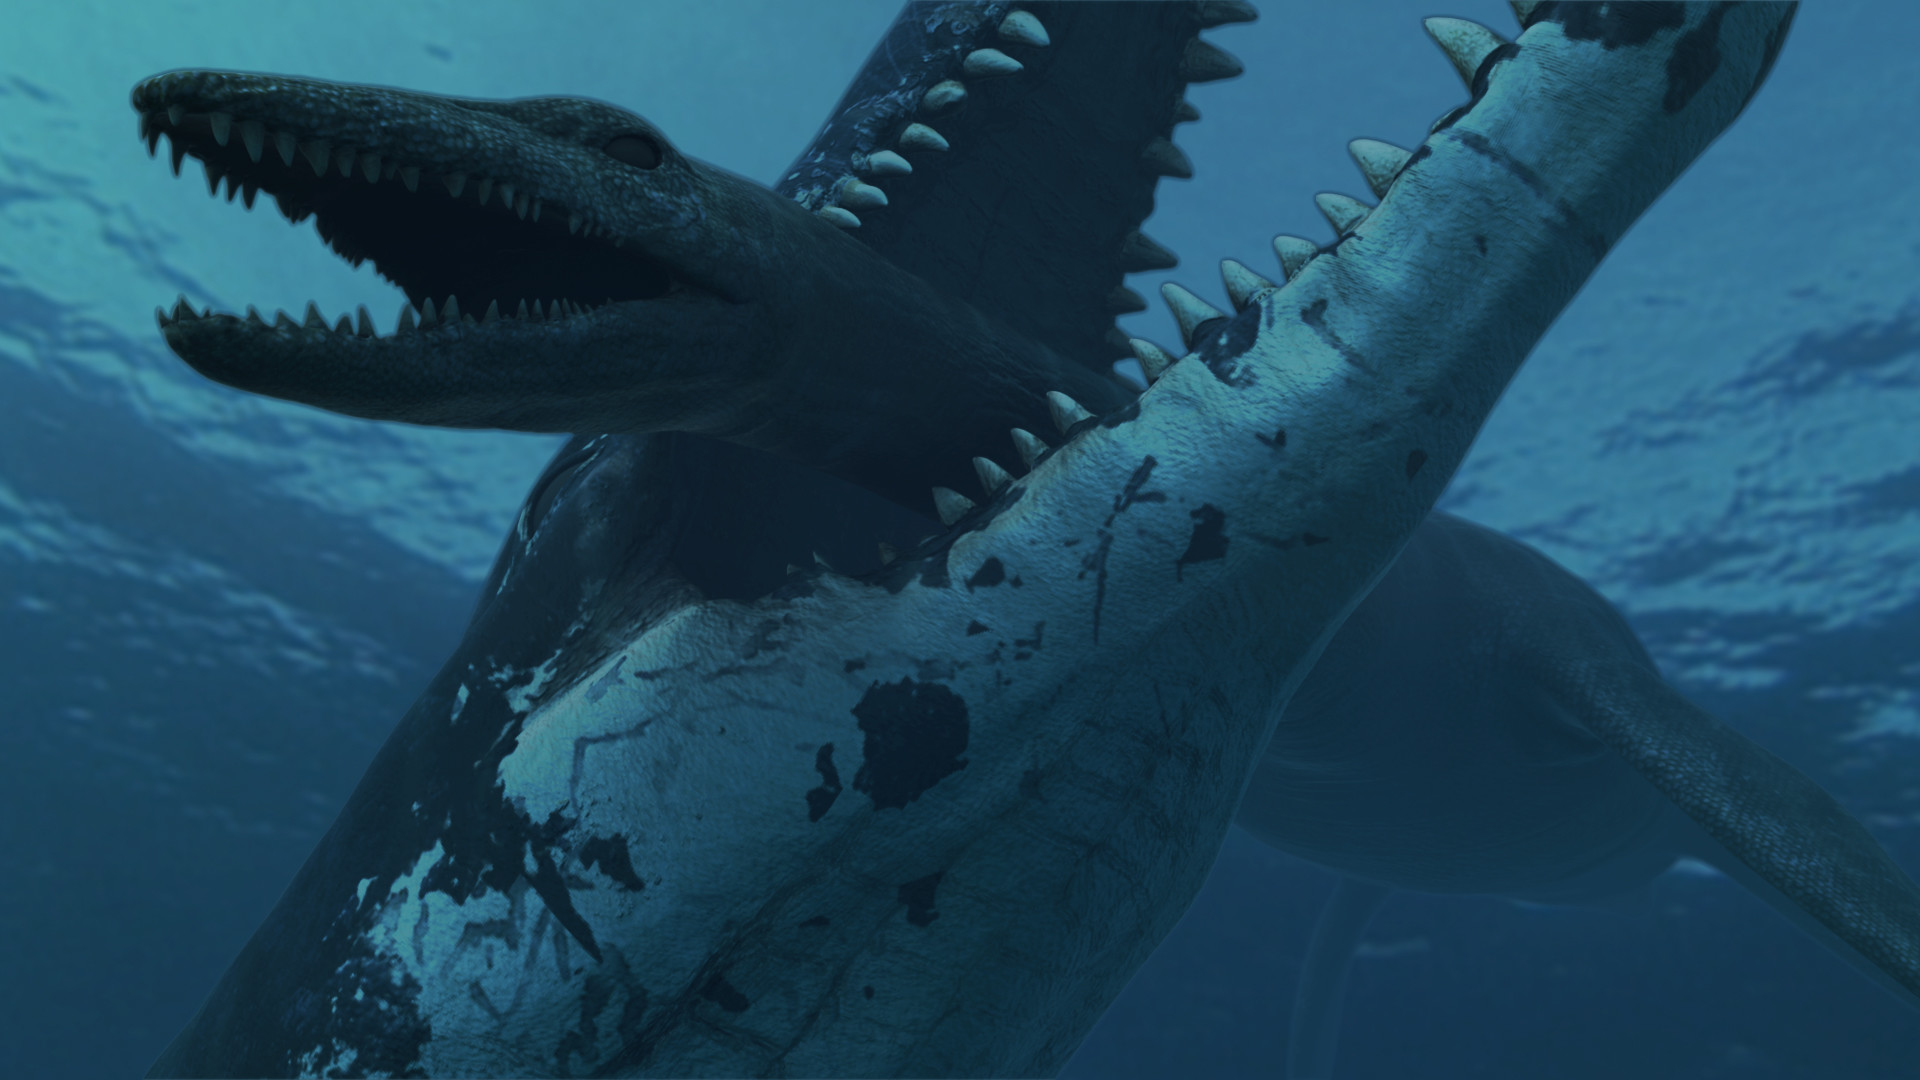 1920x1080 Giant sea monster unearthed in UK - Pliosaur